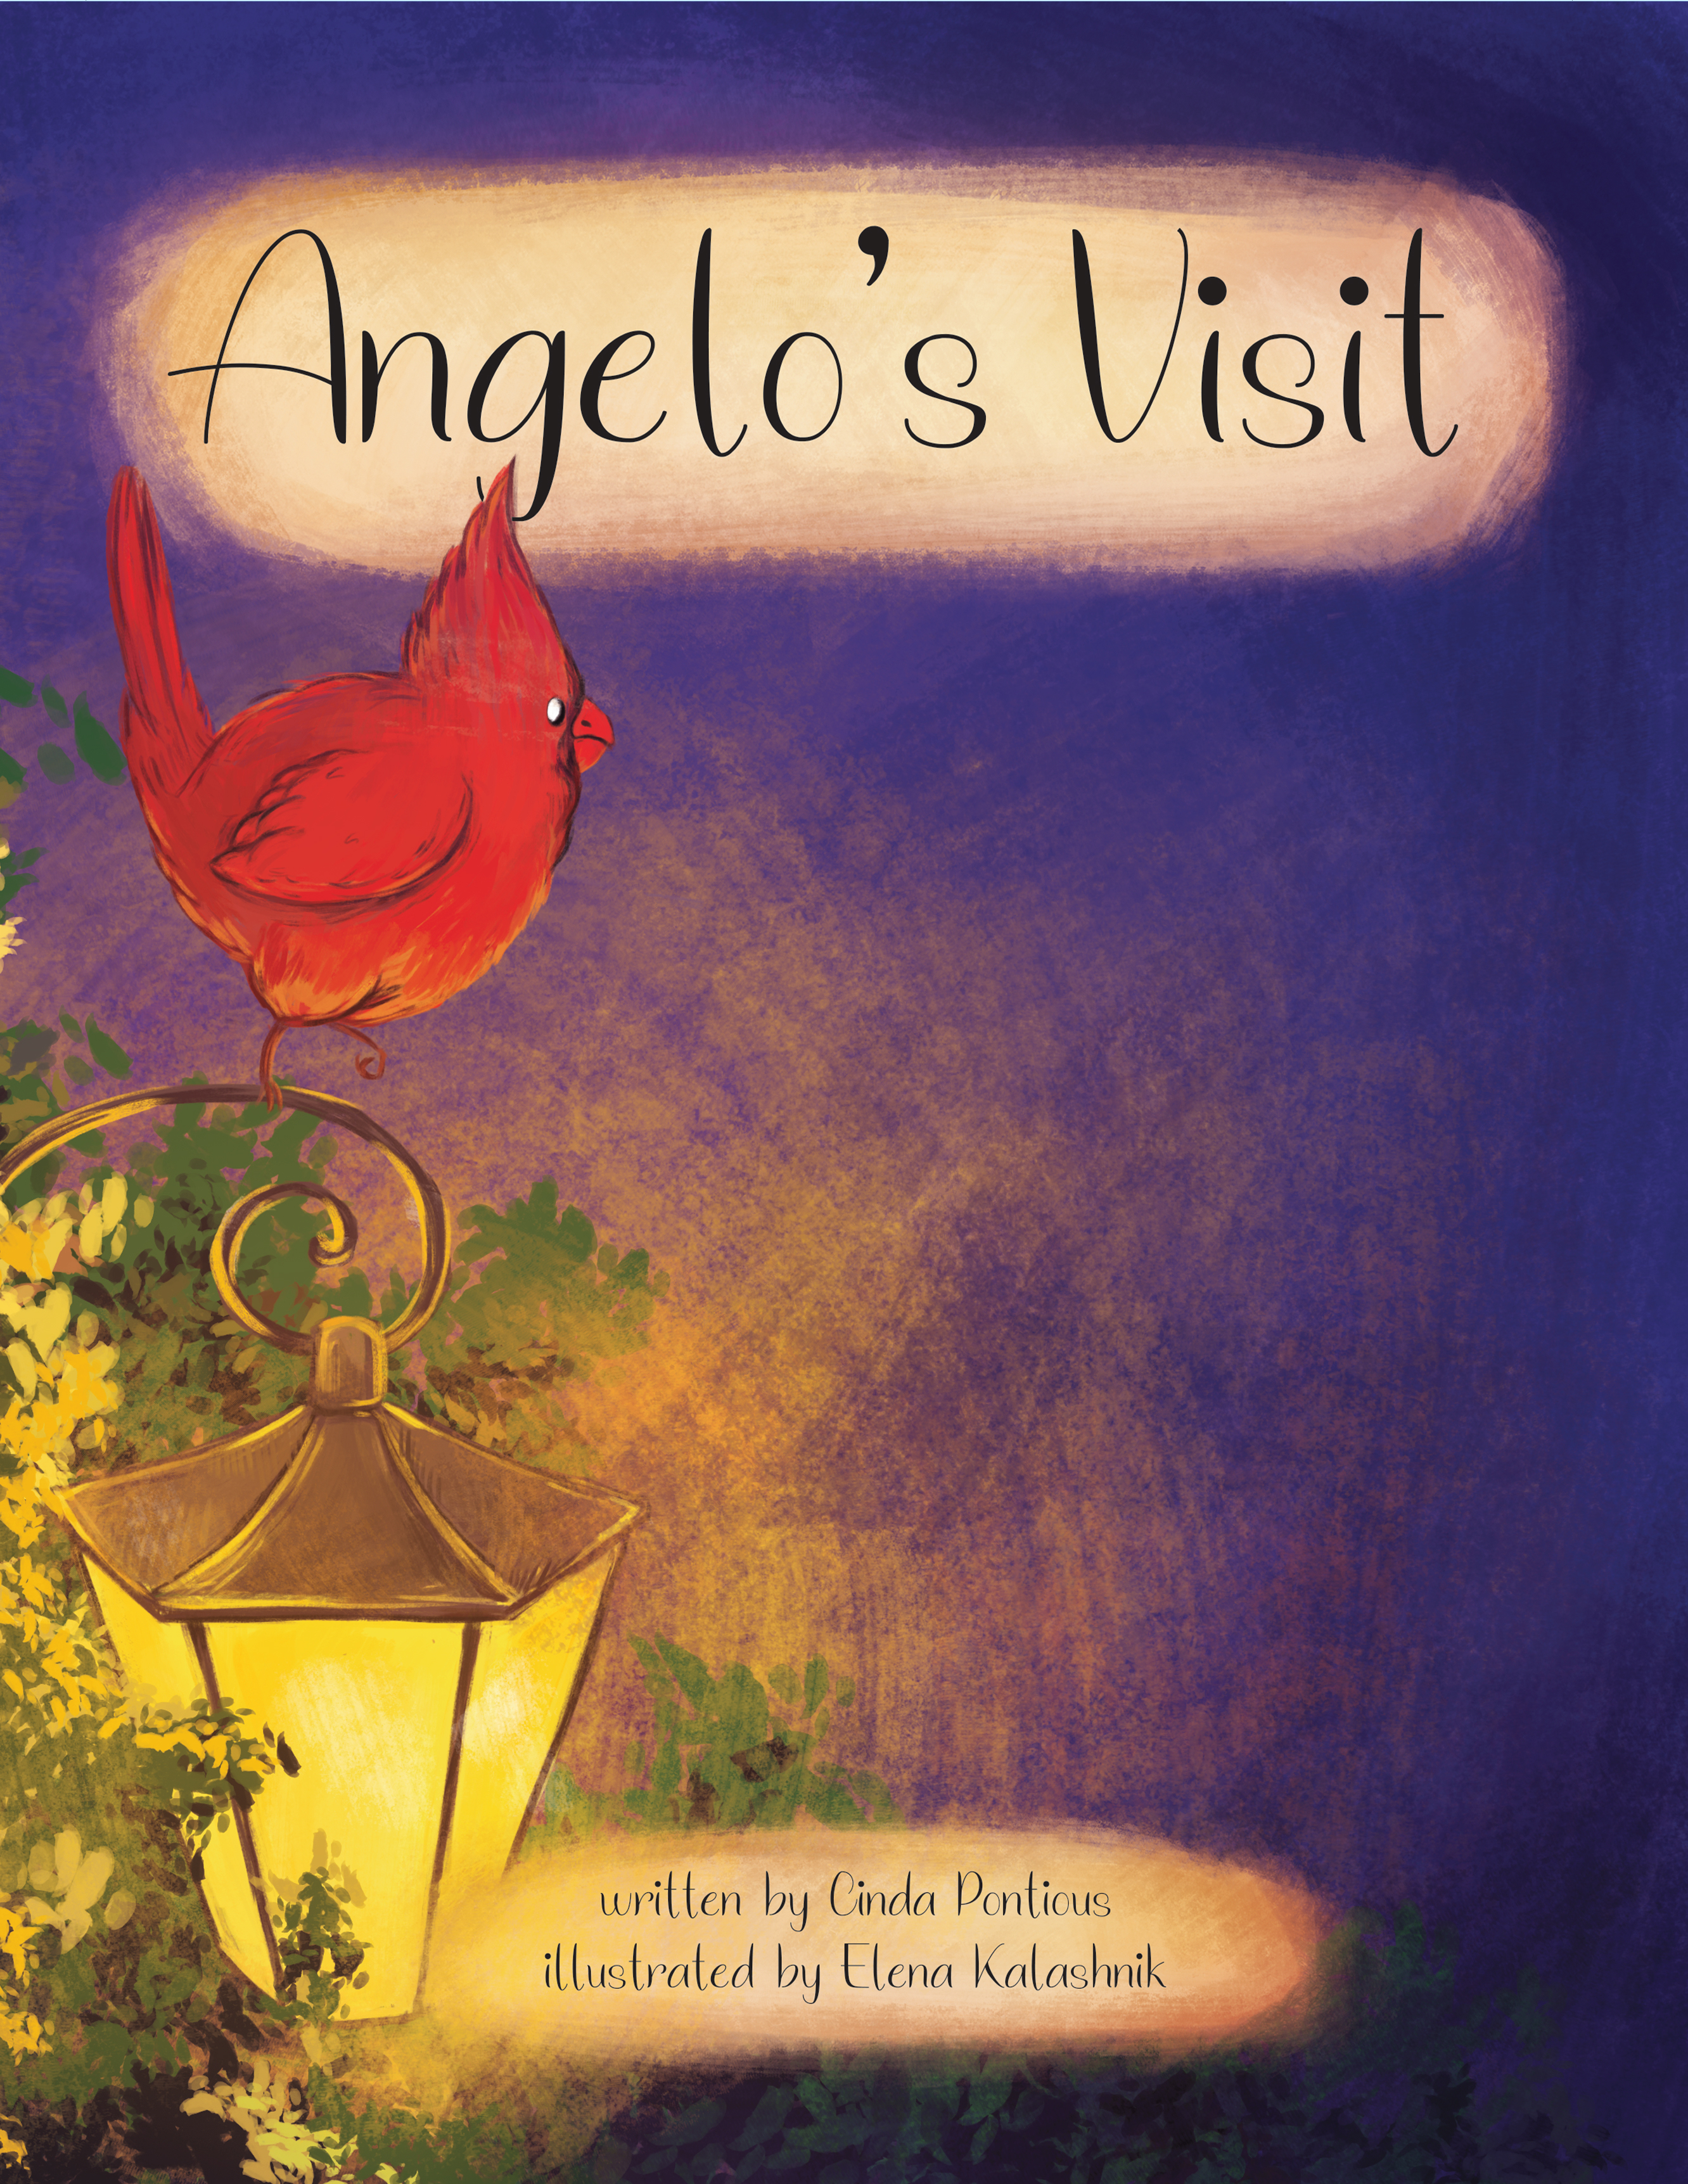 Angelo's Visit